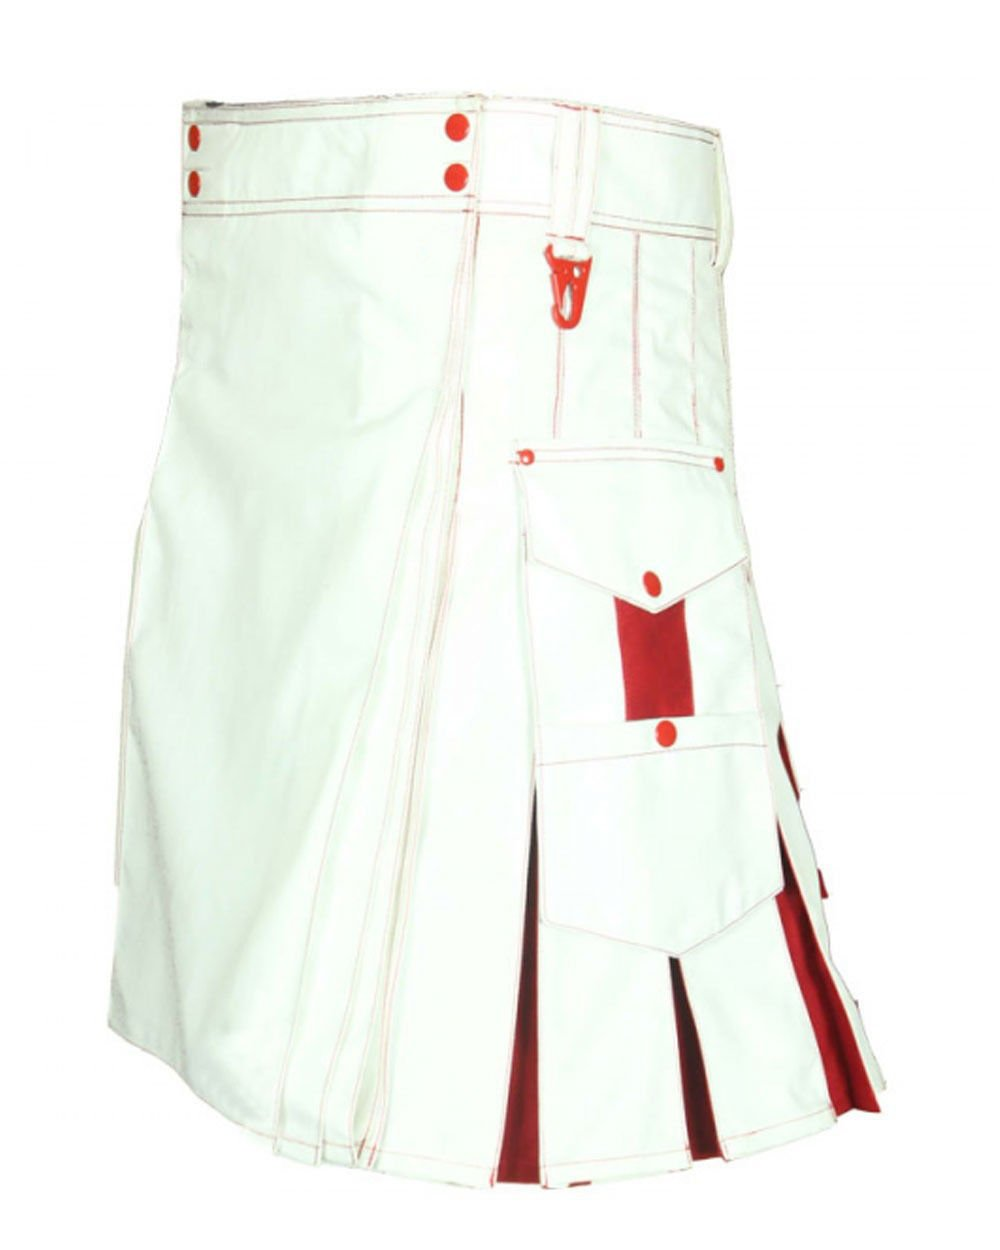 Size 38 White & Red Hybrid Cotton Kilt with Cargo Pockets Chrome Utility Kilt